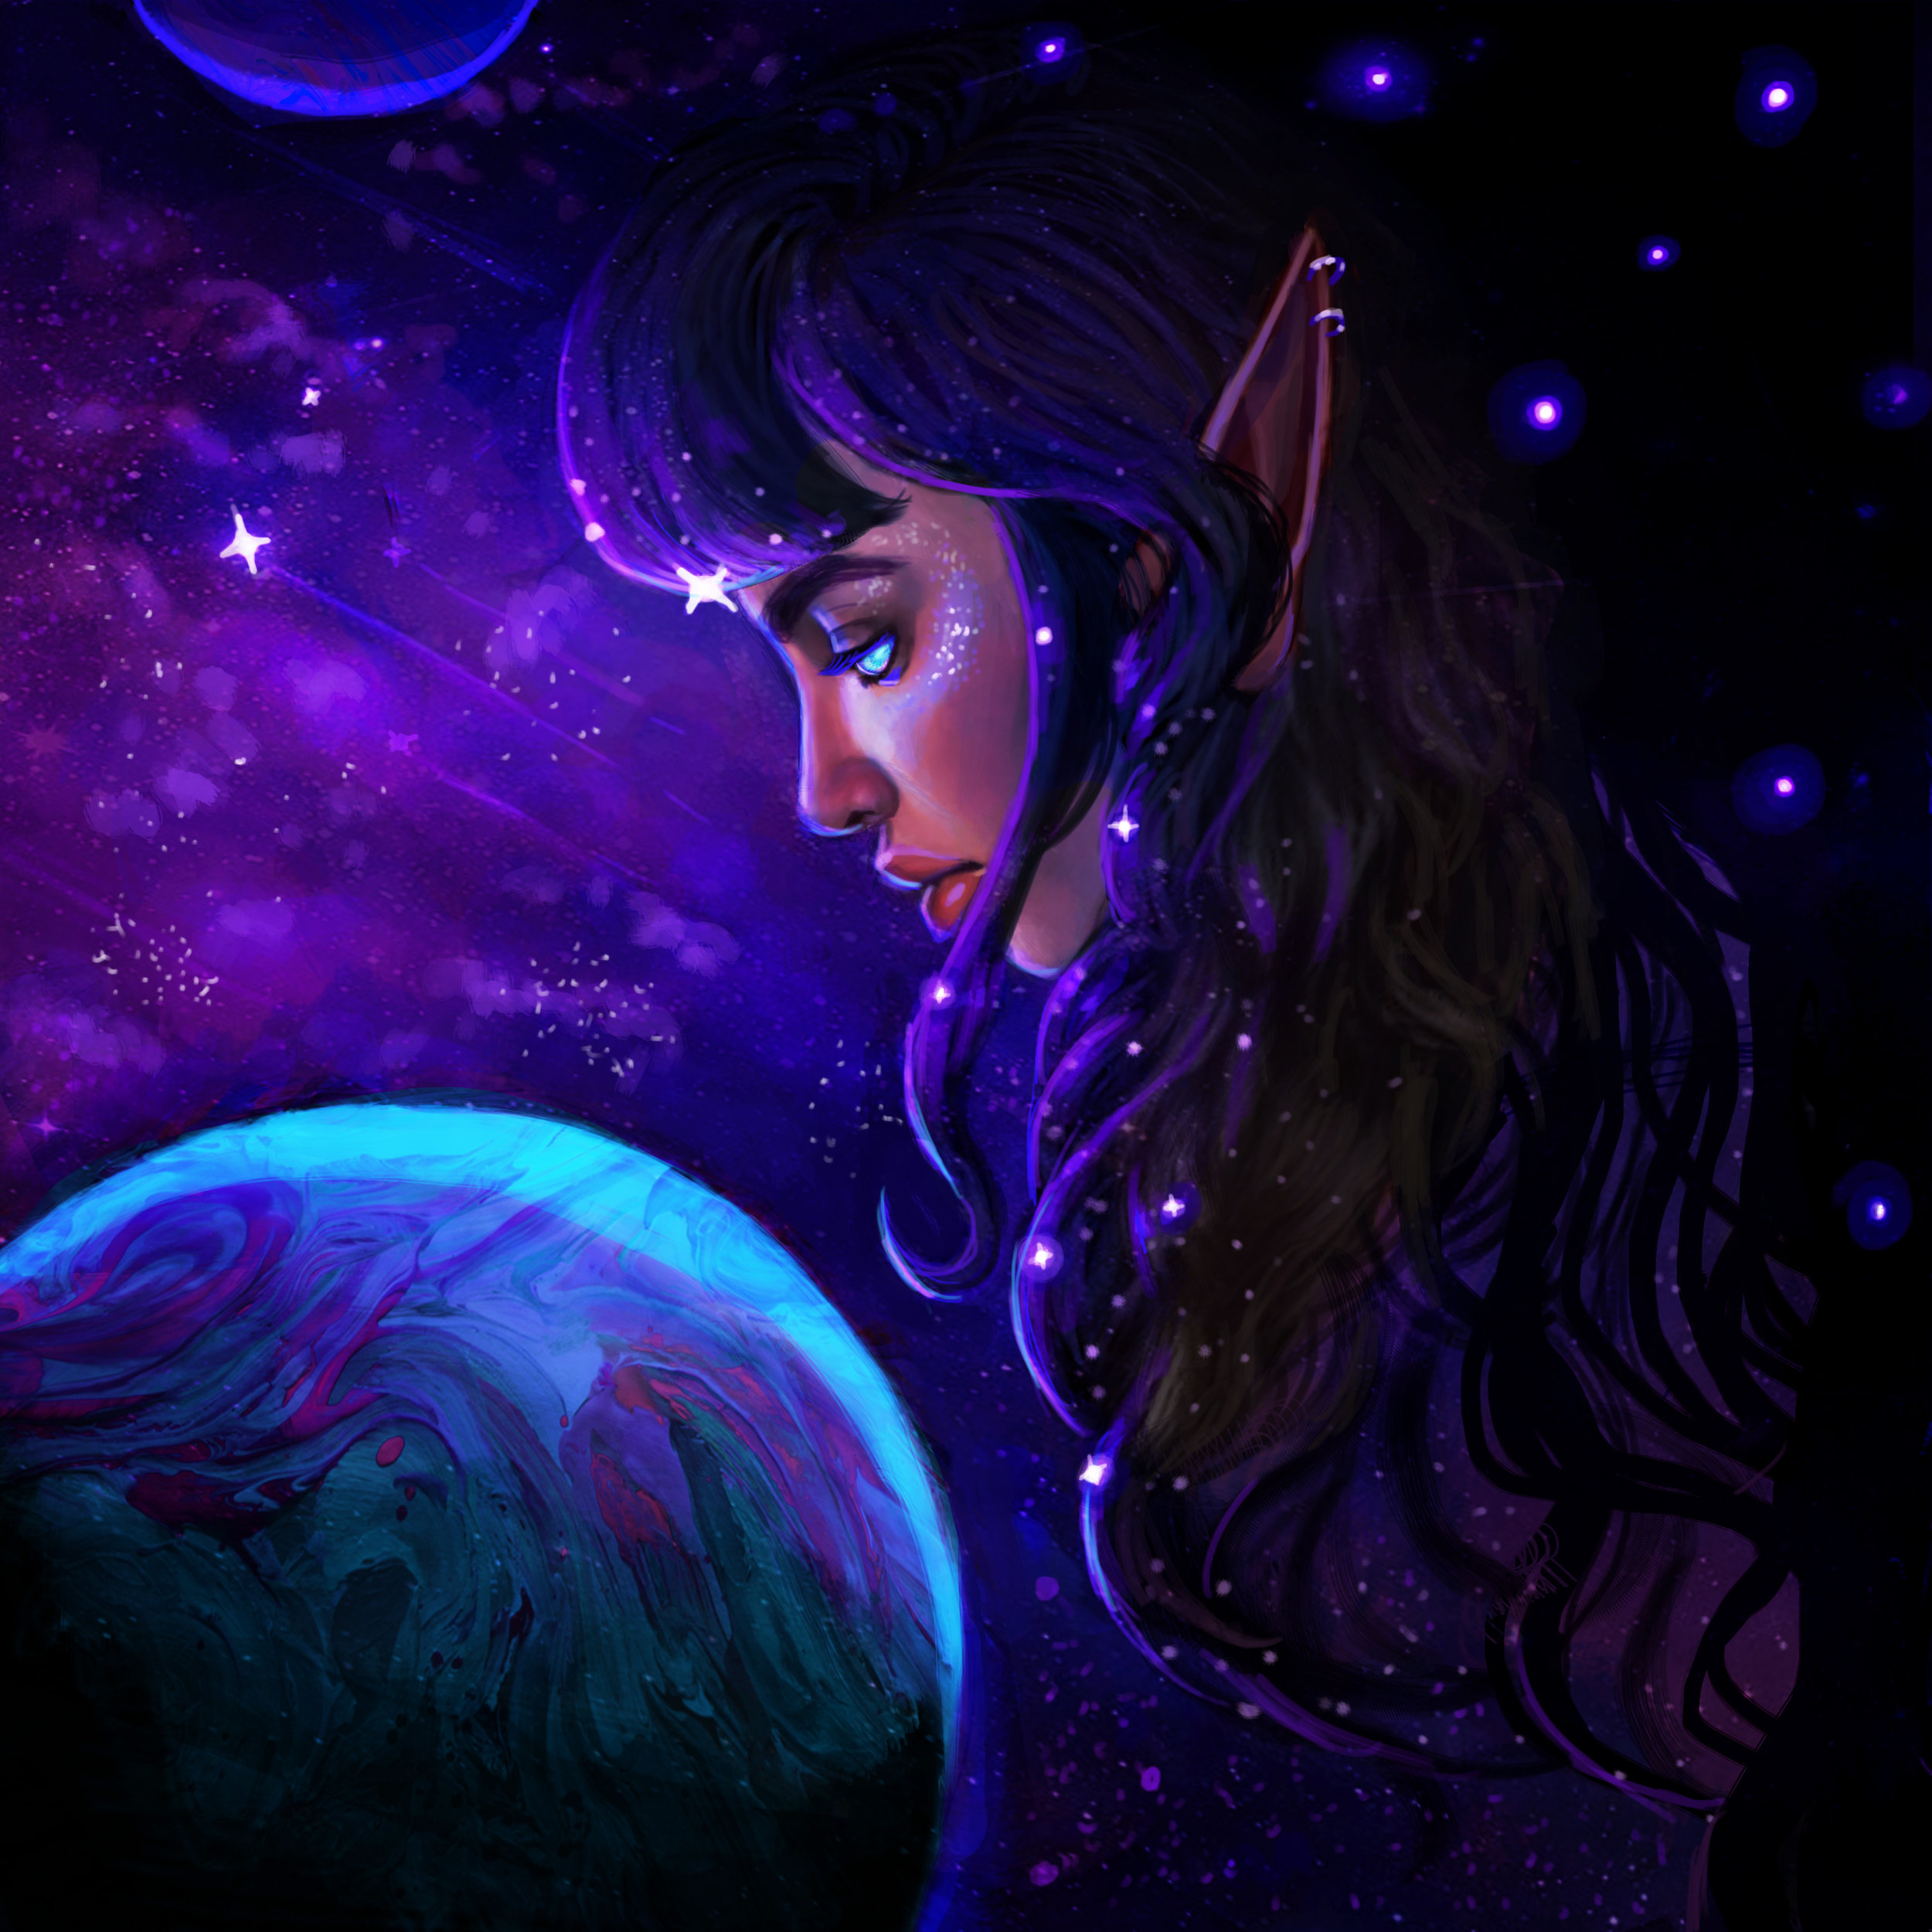 Mythos the Series… - is a science fiction/fantasy audio drama where a young mage finds herself crossing the galaxy in search of a mysterious and ancient relic.